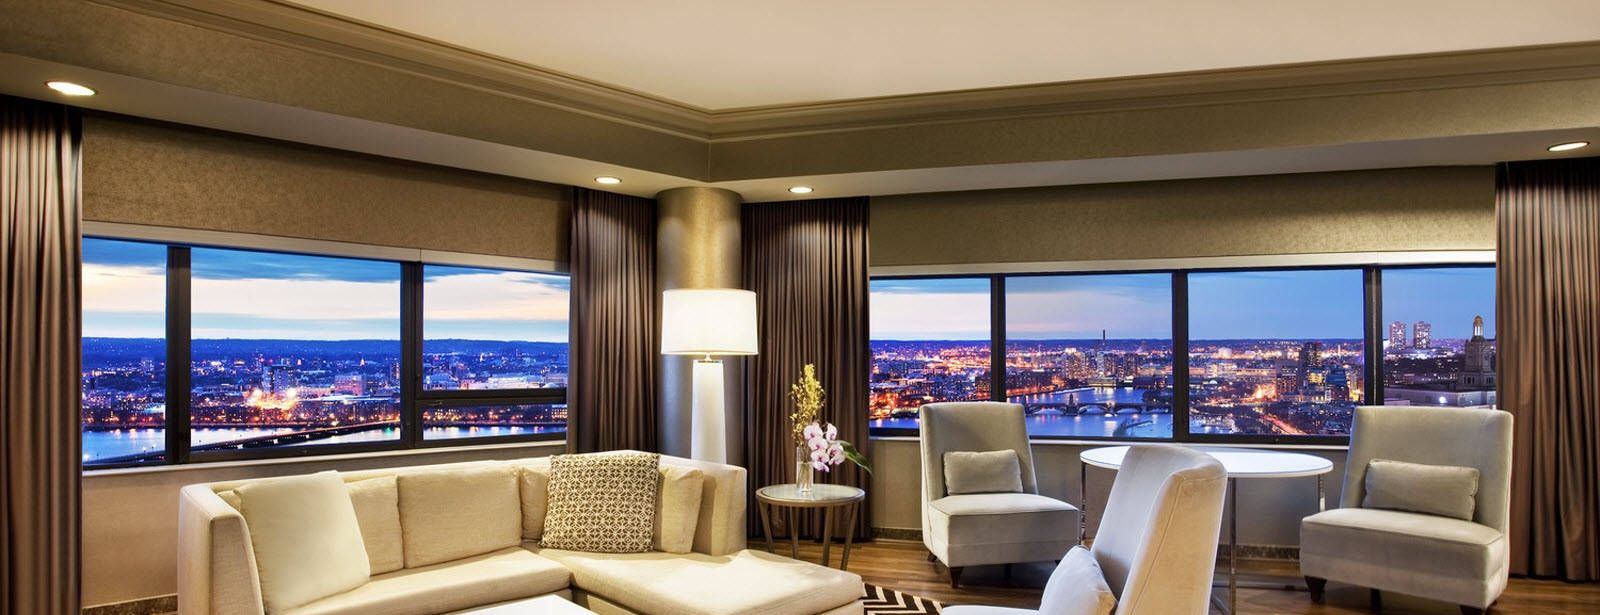 The Westin Copley Place, Boston presidential suite